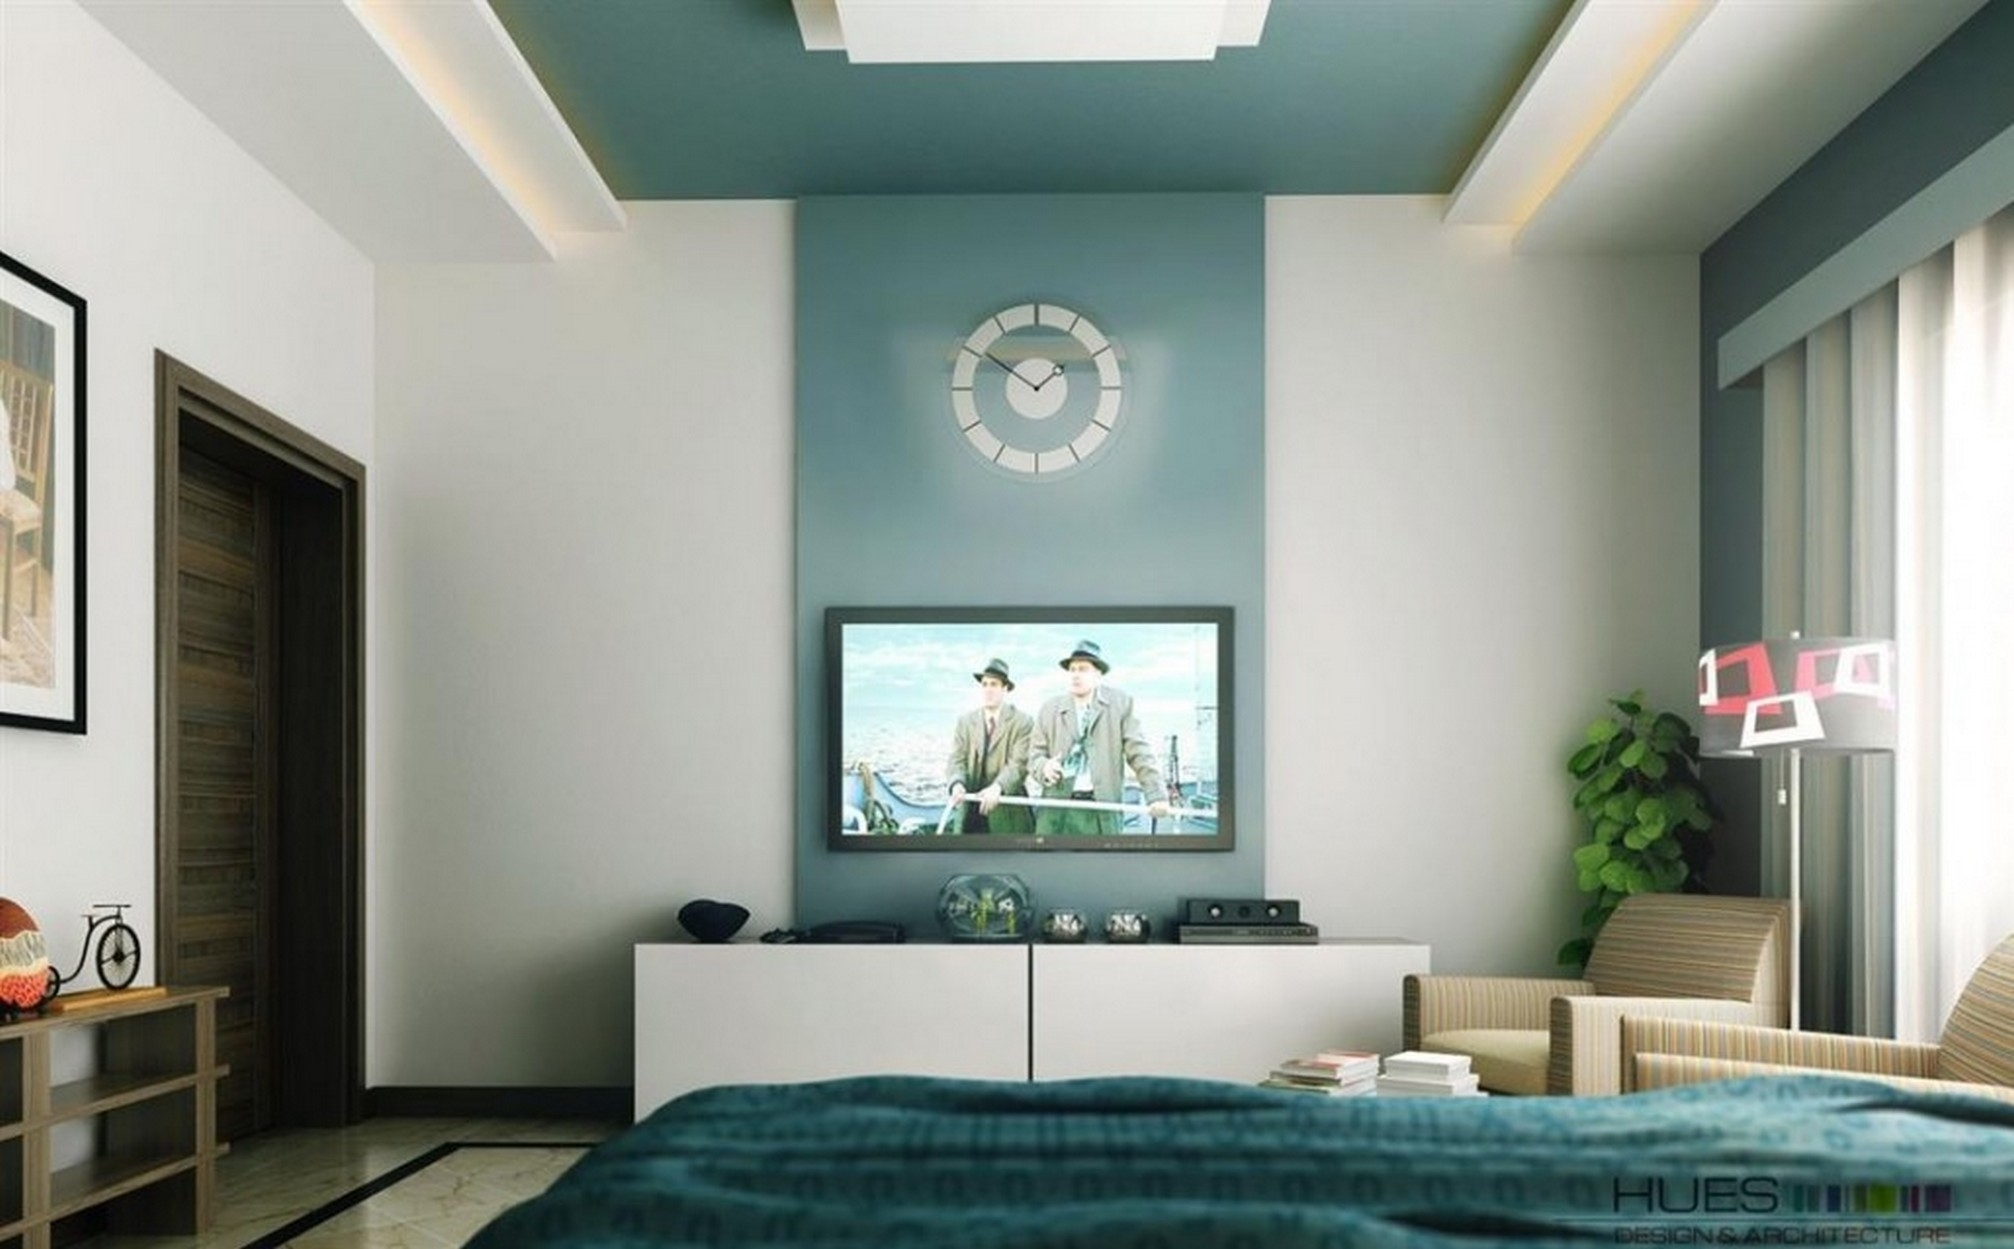 Accent Wall Color For High Walls With Round Clock Ideas And Tv On For Most Popular Wall Accents Behind Tv (View 5 of 15)